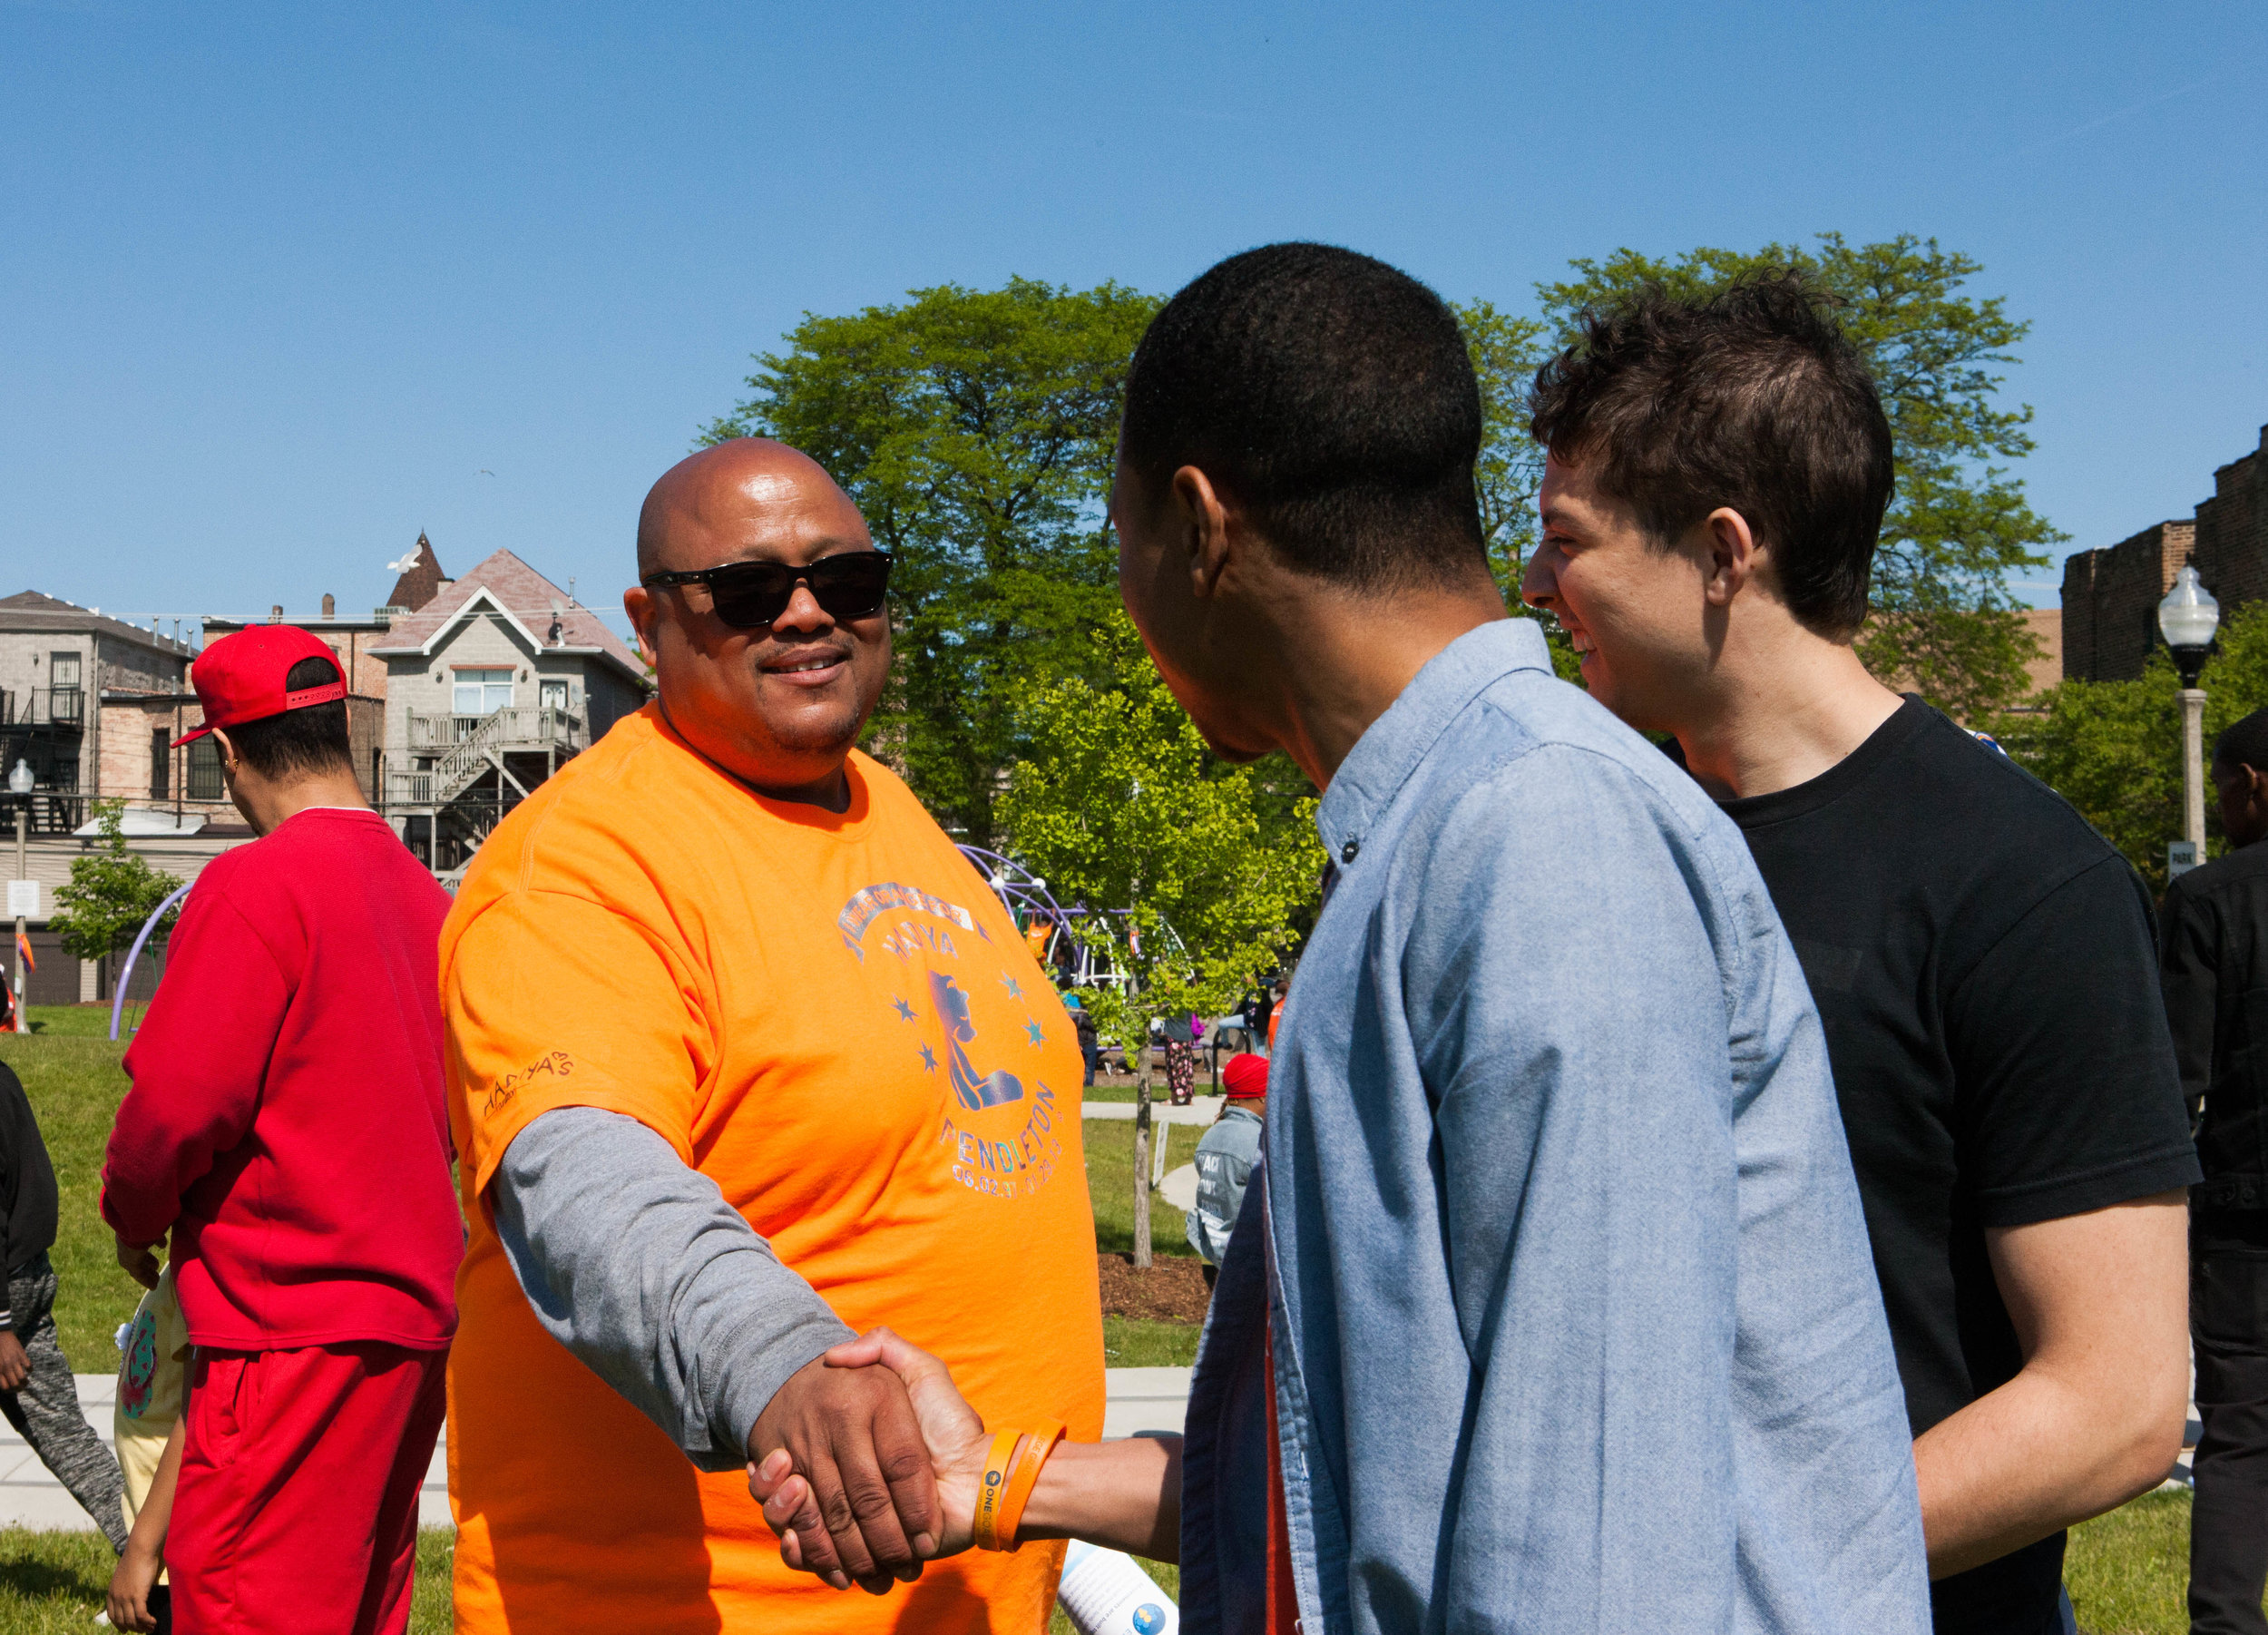 Robert shakes a man's hand at the Wear Orange Peace Party.